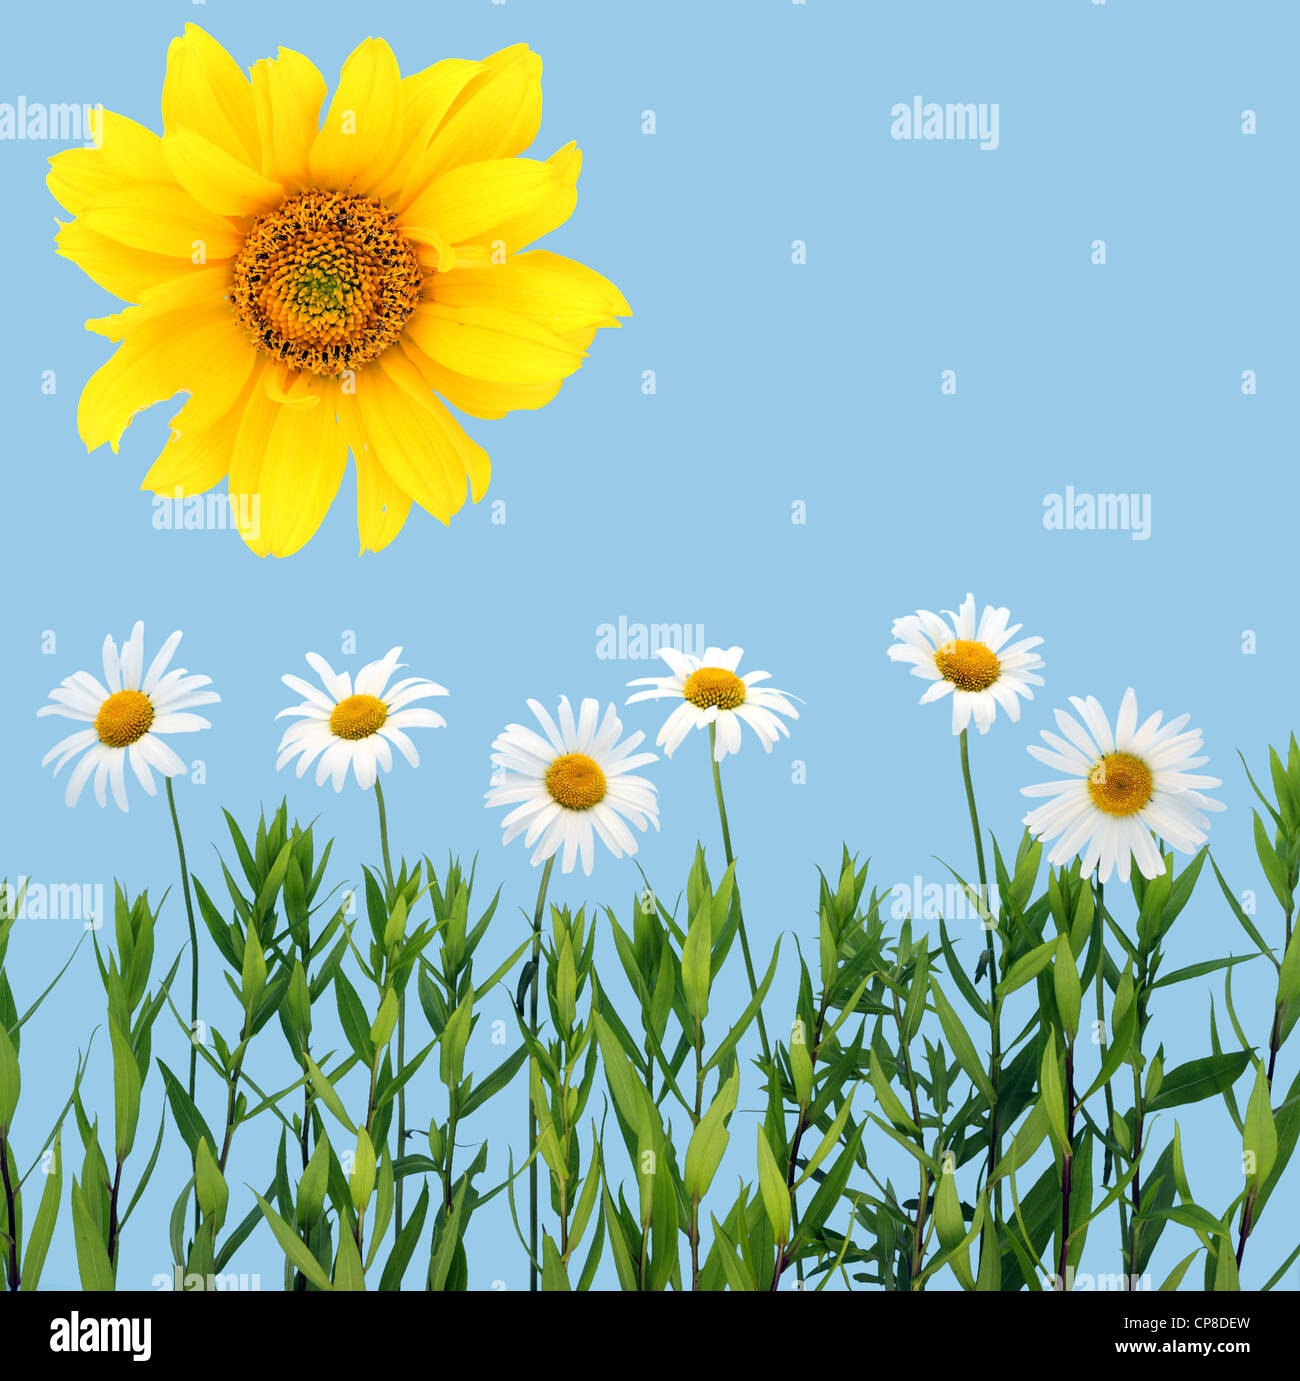 Children's collage of a camomile and sunflower. Isolated on cyan. - Stock Image